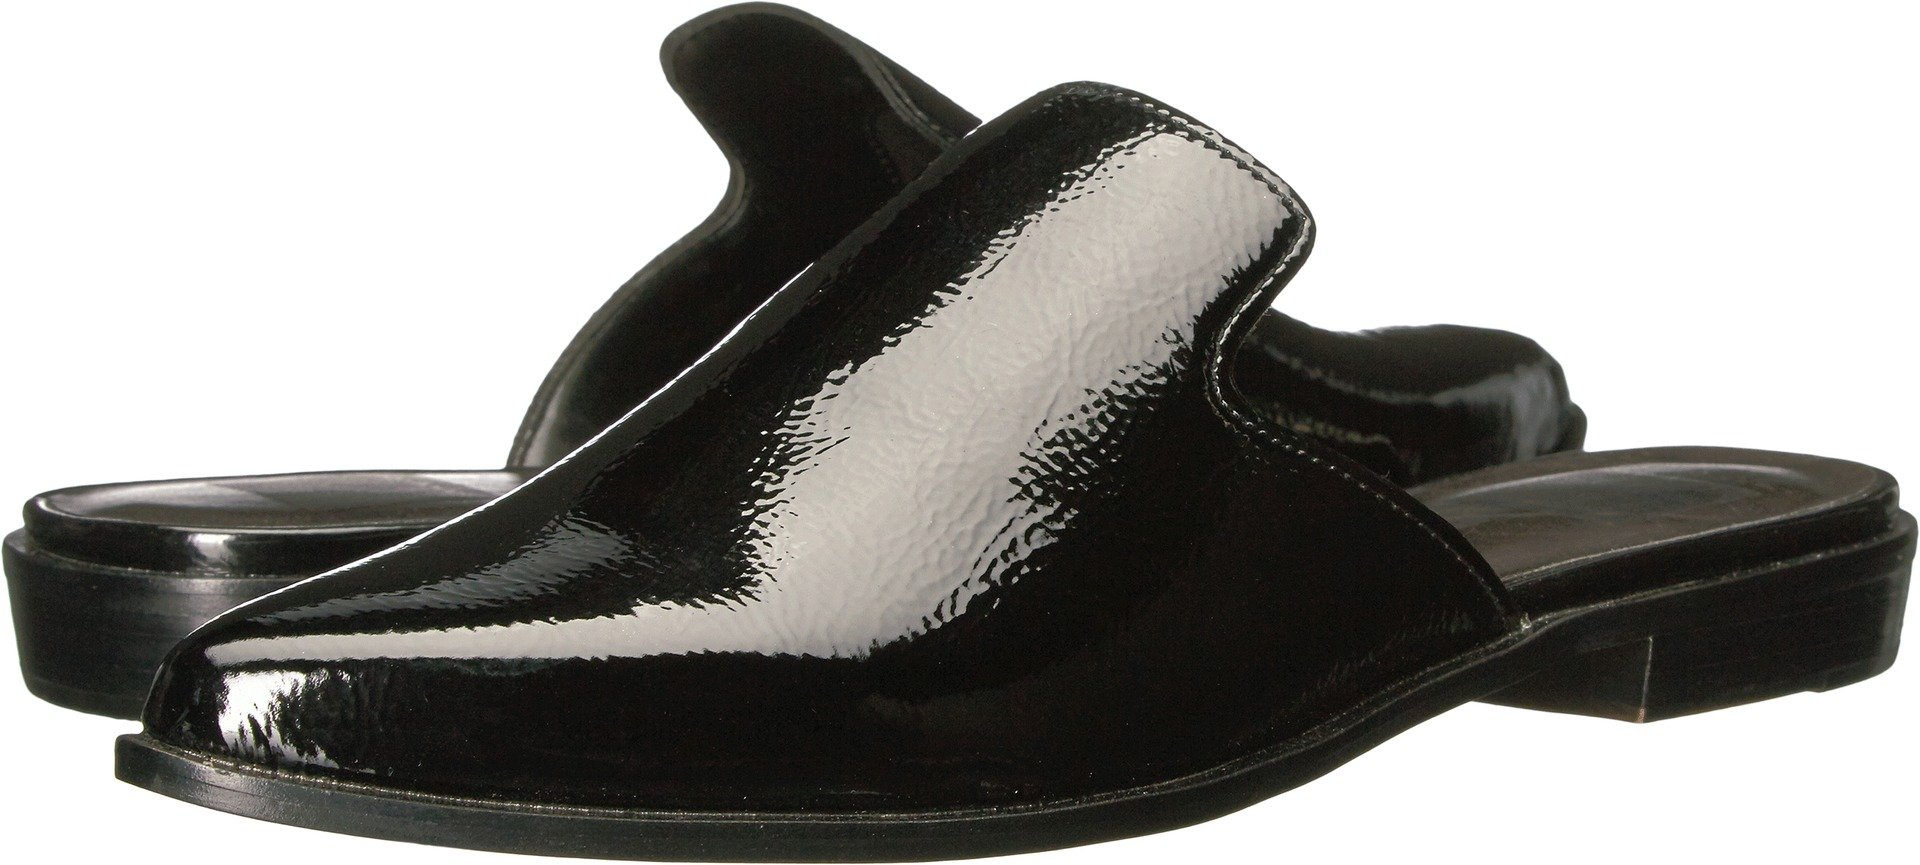 Dolce Vita Women's Holli Mule, Black Patent Stella, 7.5 Medium US